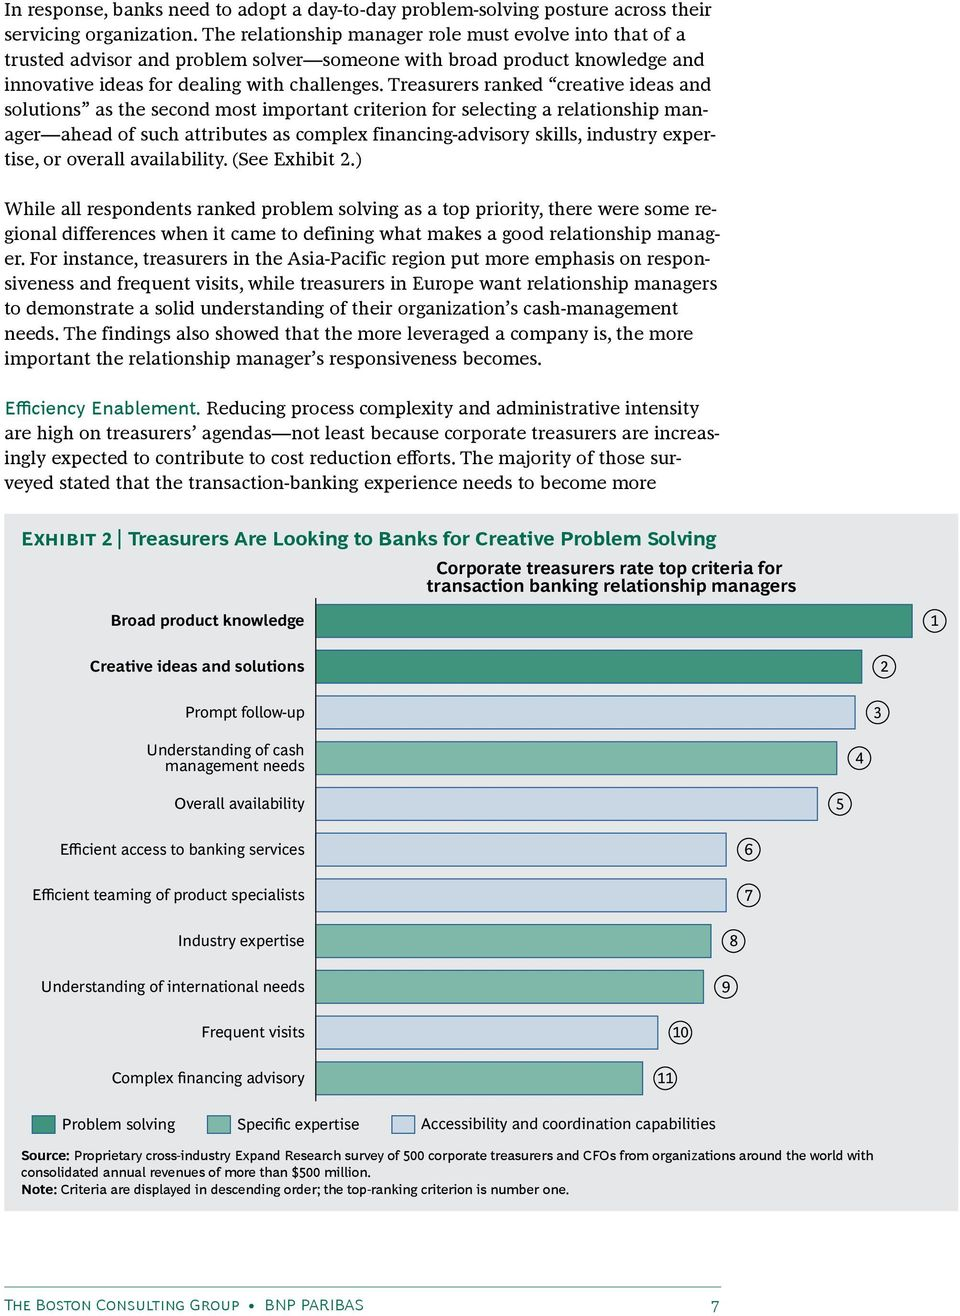 Treasurers ranked creative ideas and solutions as the second most important criterion for selecting a relationship manager ahead of such attributes as complex financing-advisory skills, industry